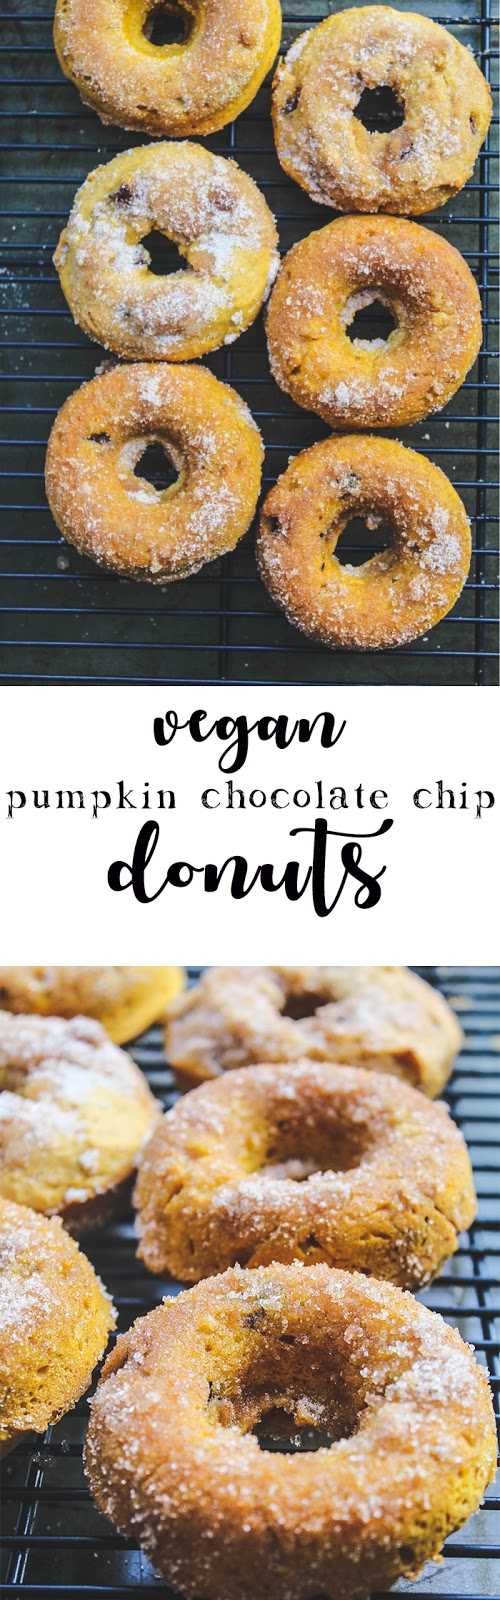 Baked chocolate chip pumpkin donuts with a cinnamon sugar topping are an irresistible fall treat! These vegan donuts are a perfect afternoon snack or dessert. #vegan #bakeddonuts #pumpkin #dessert #donuts